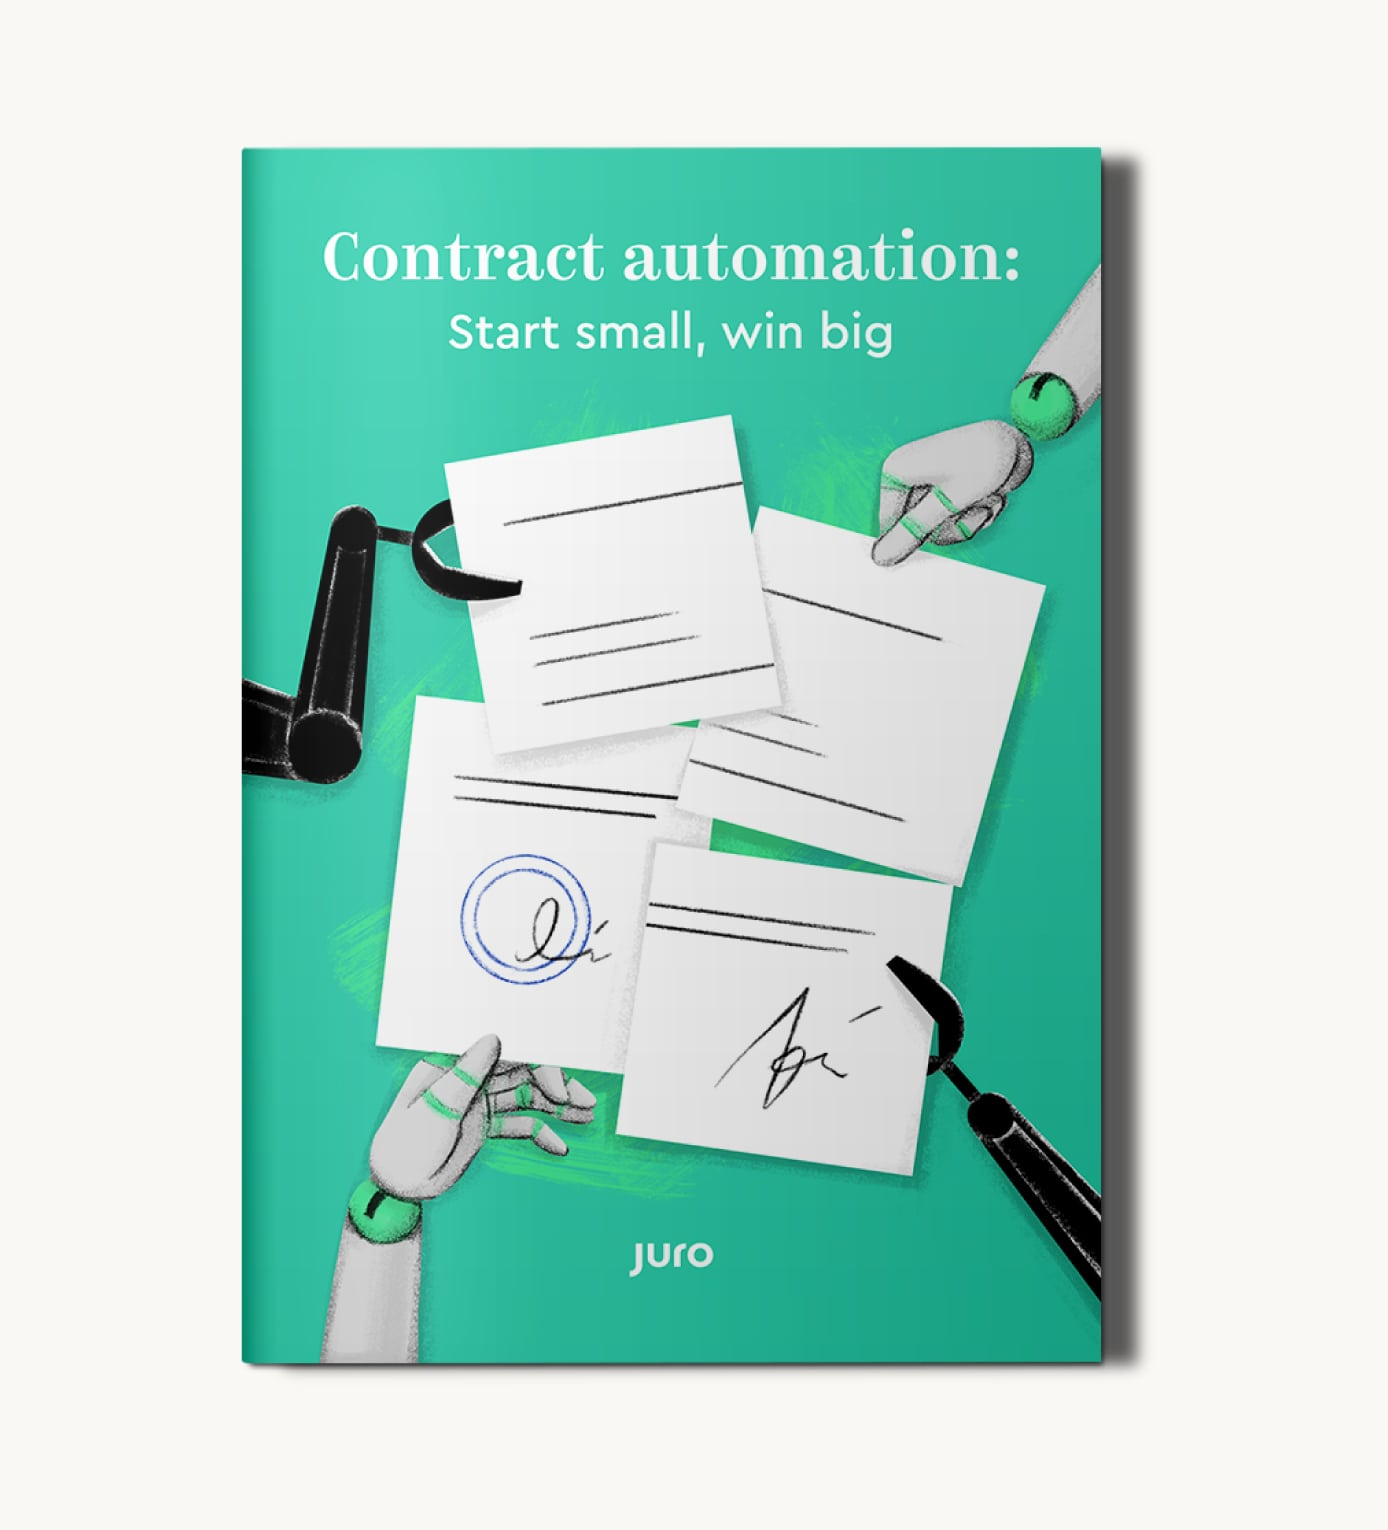 juro-contract-automation-cover-1388x1530